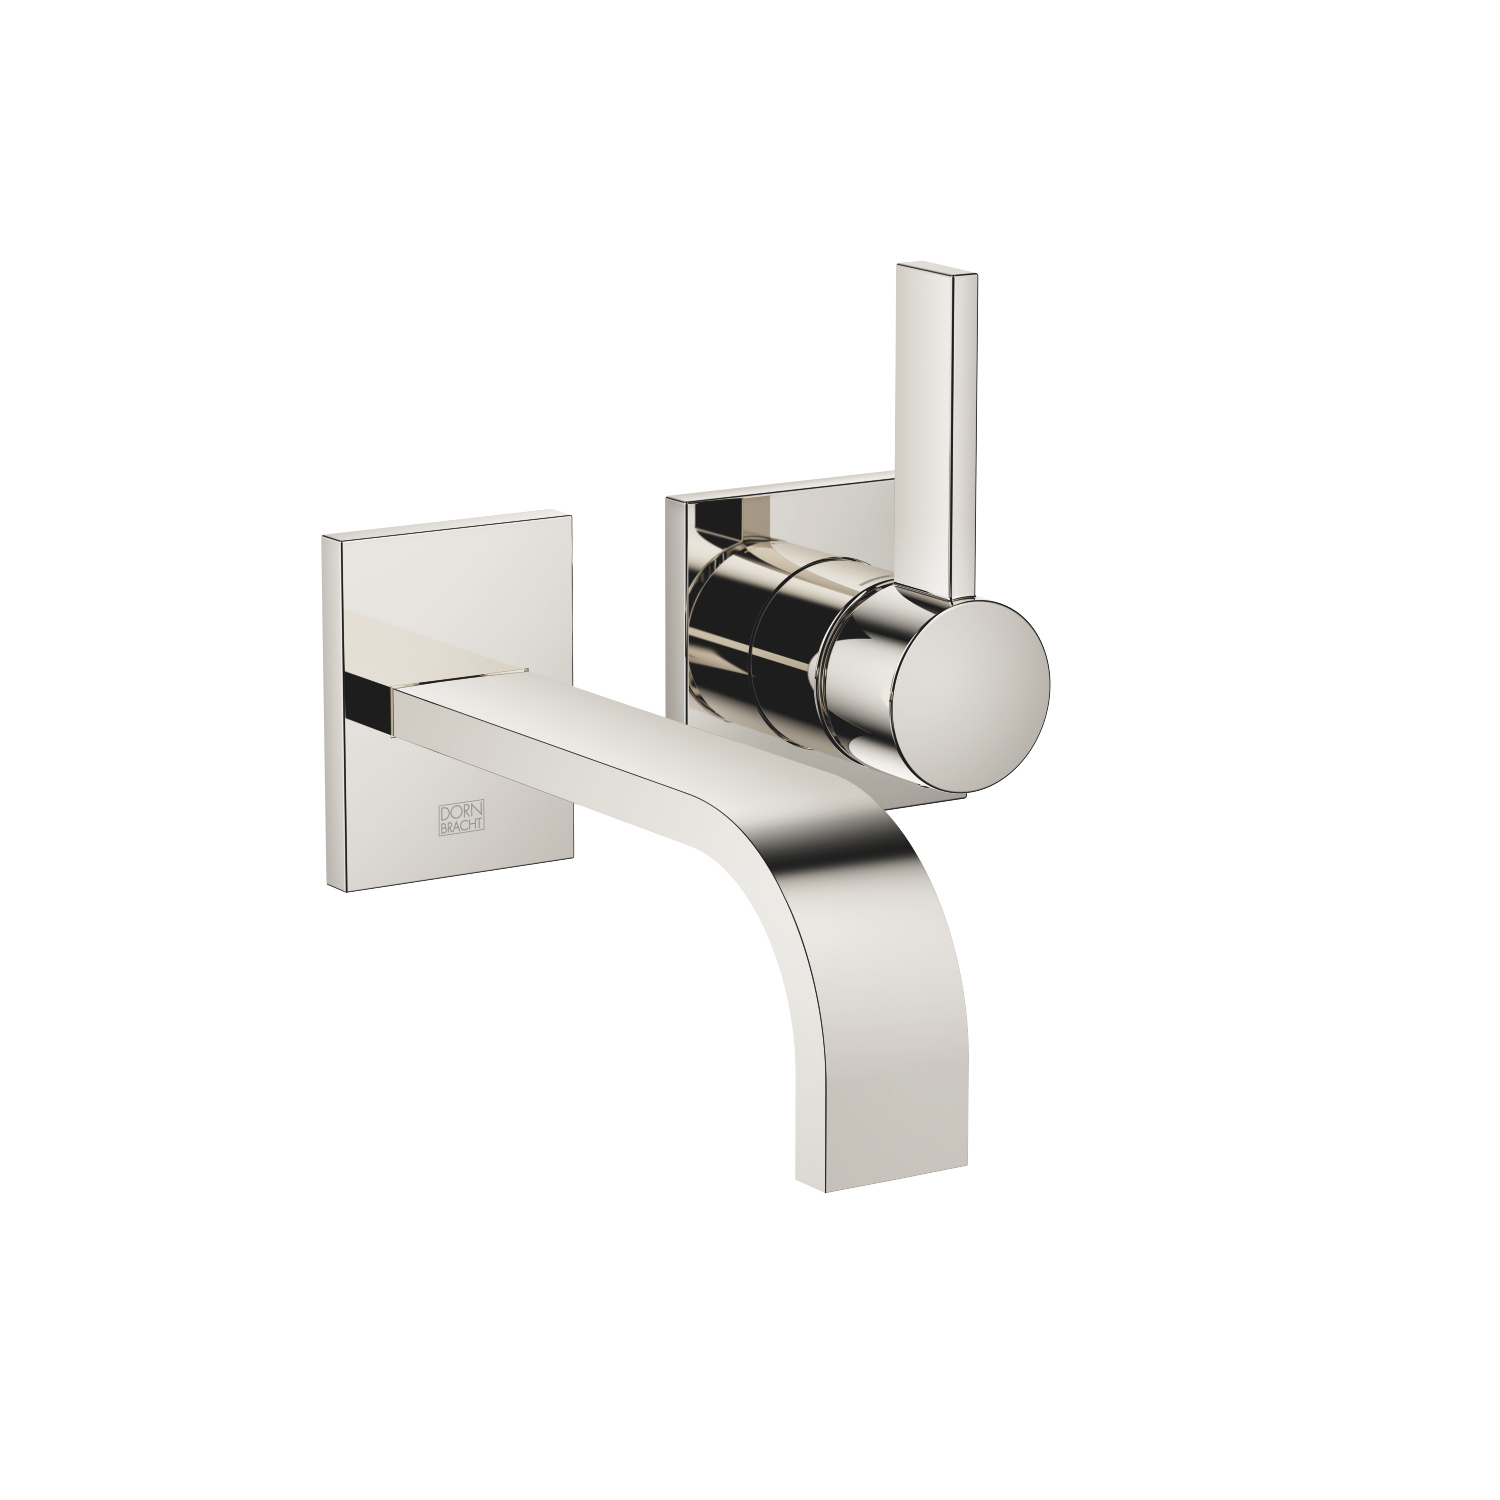 Wall-mounted single-lever basin mixer without pop-up waste - platinum